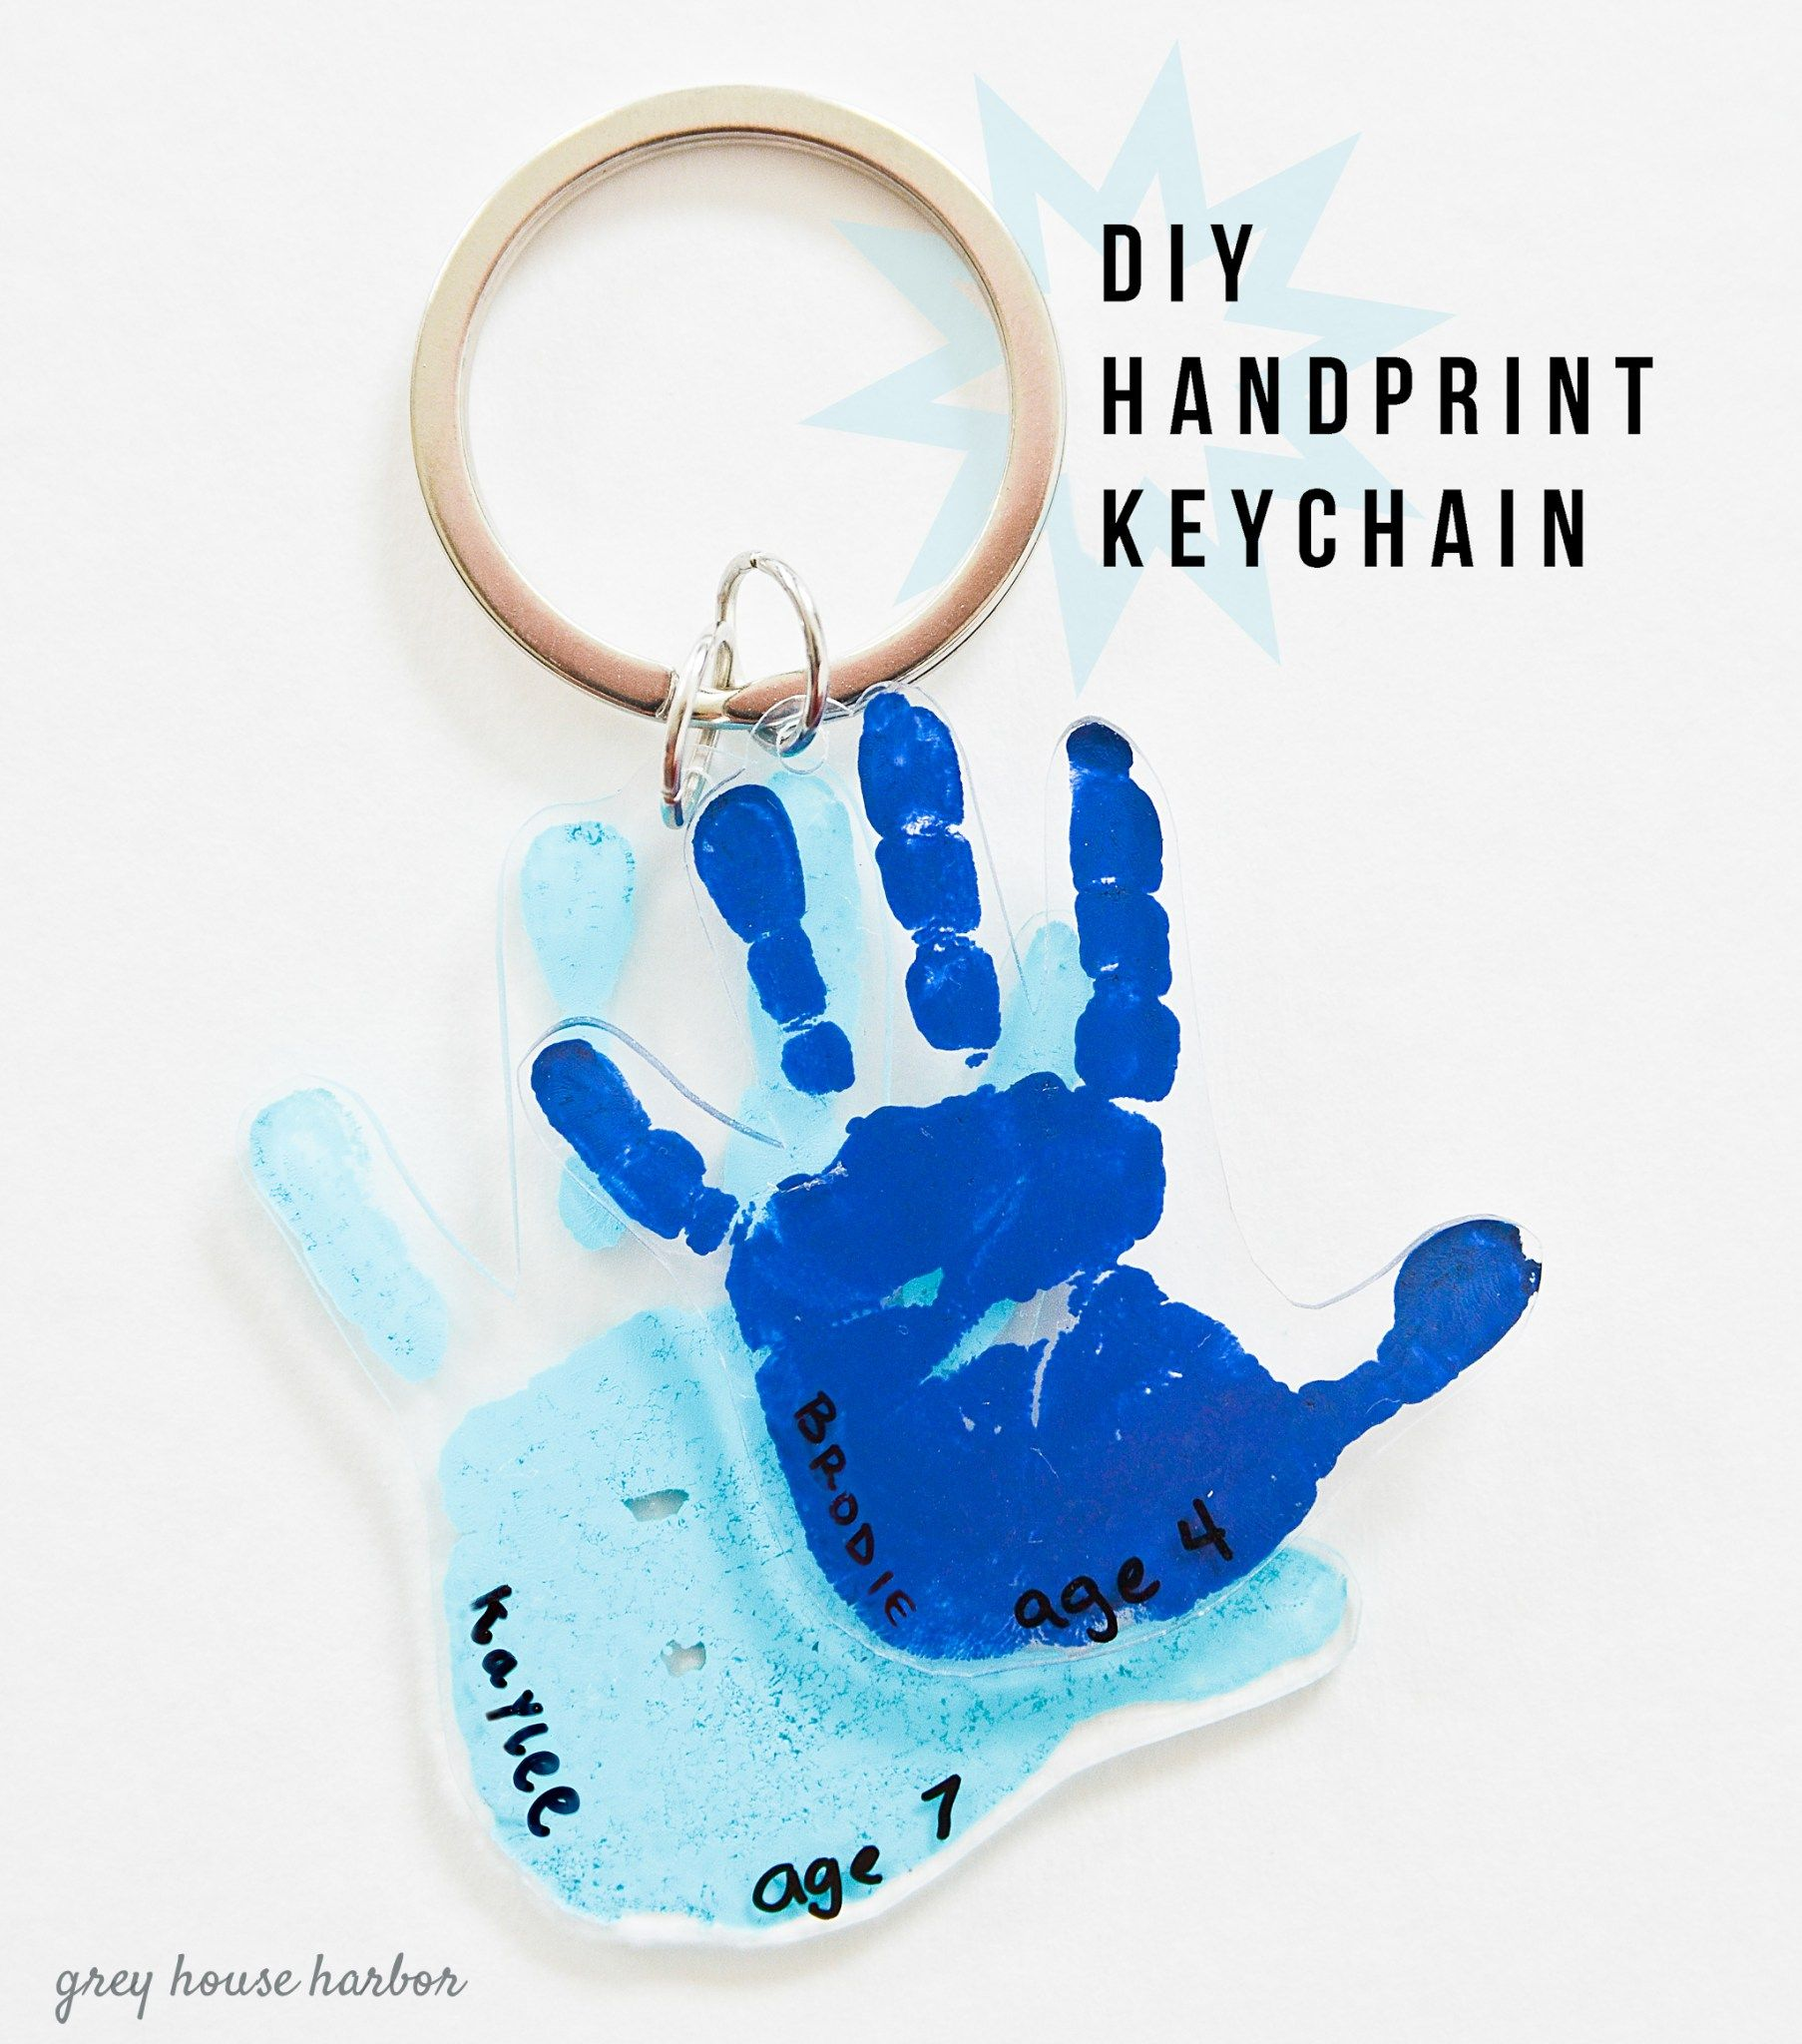 DIY Handprint Keychain - great gift idea! | greyhouseharbor.com #grandparentsdaygifts